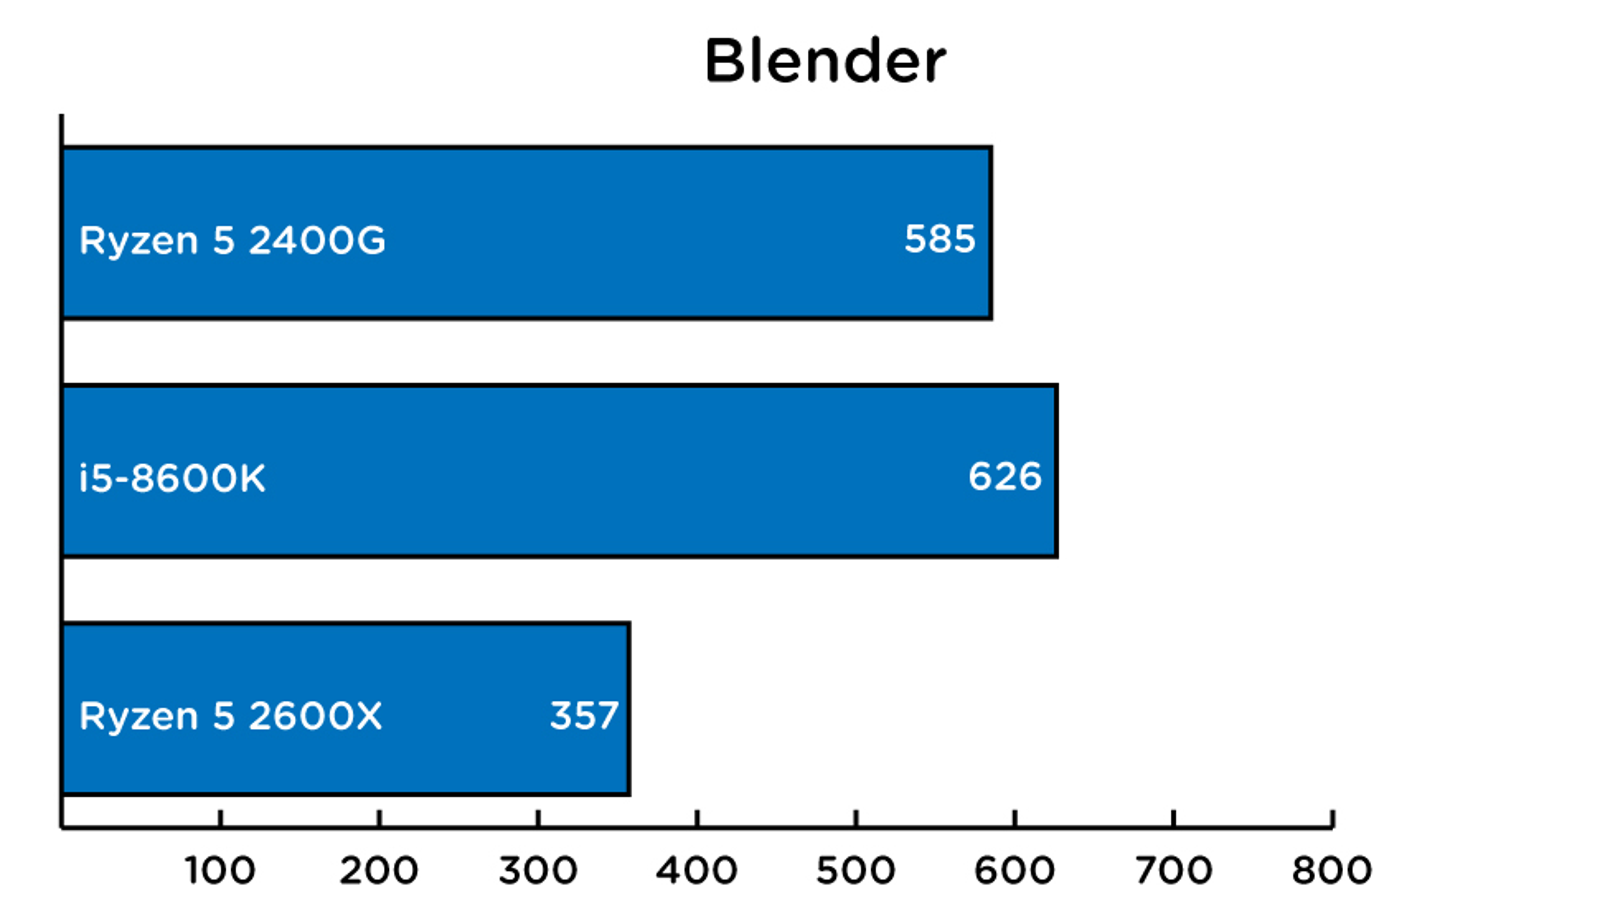 Time in seconds to render a file. Faster is better.